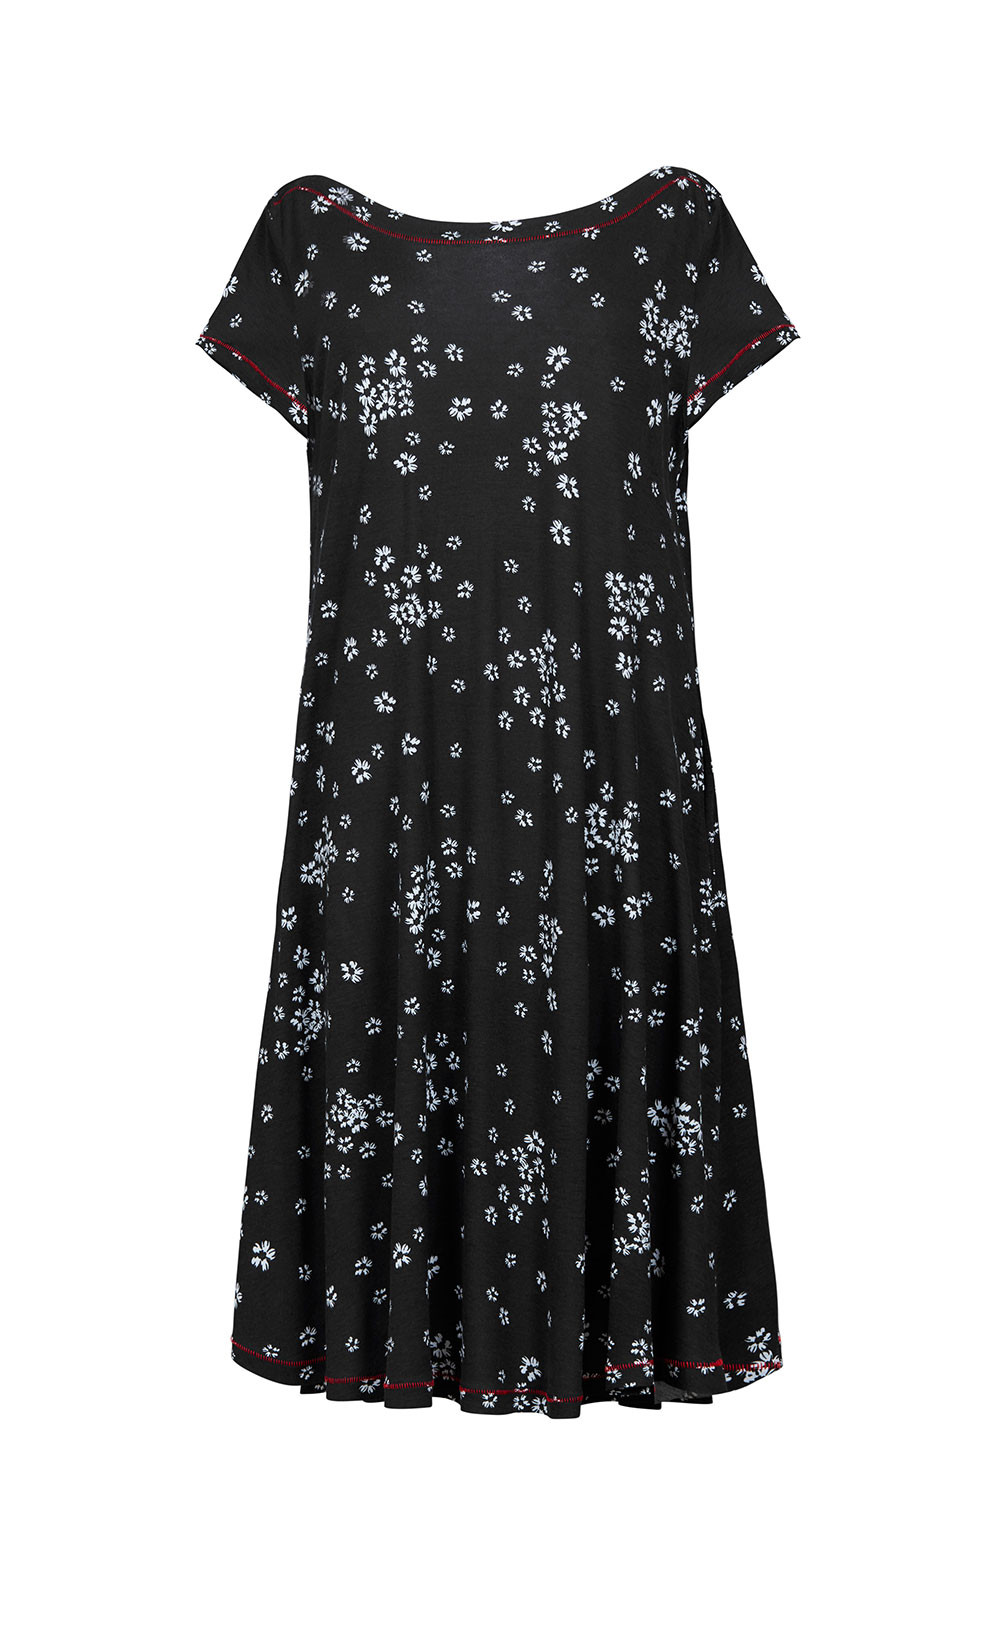 Paltro Print dress